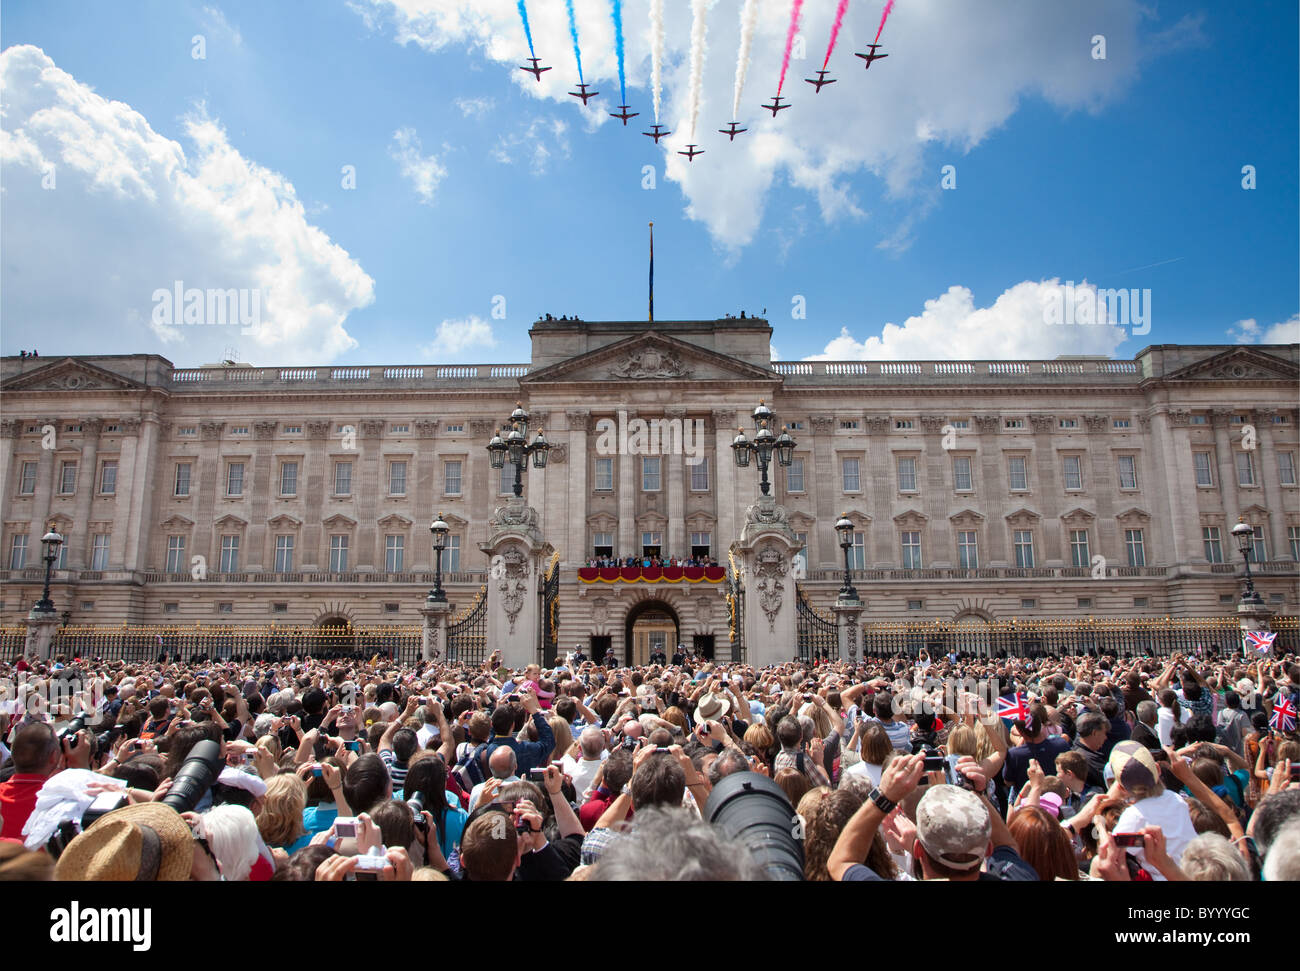 Red Arrows flypast Buckingham Palace - Stock Image